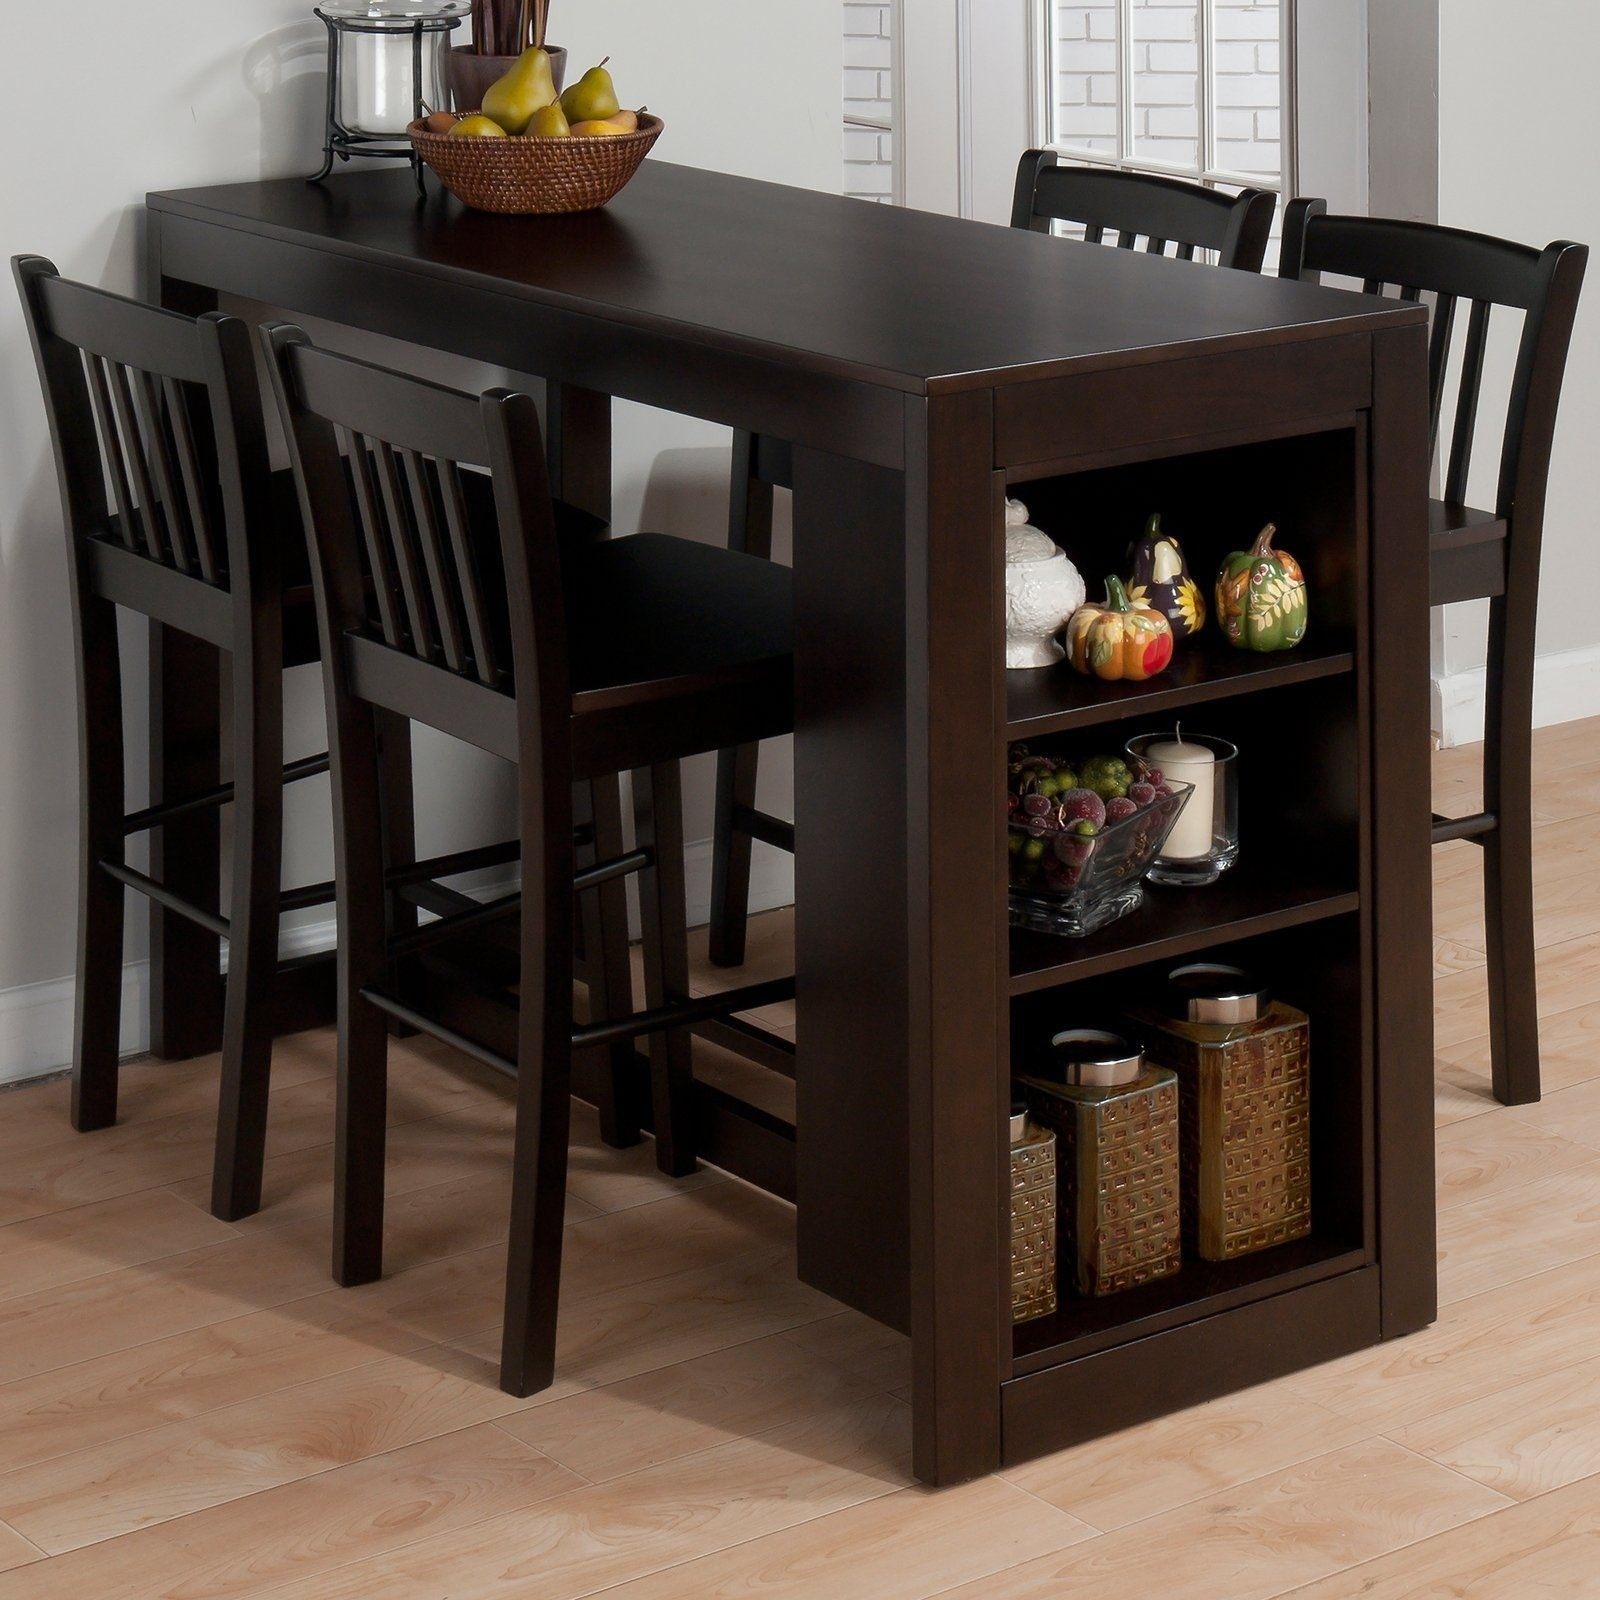 Superb Small Dining Set For 4